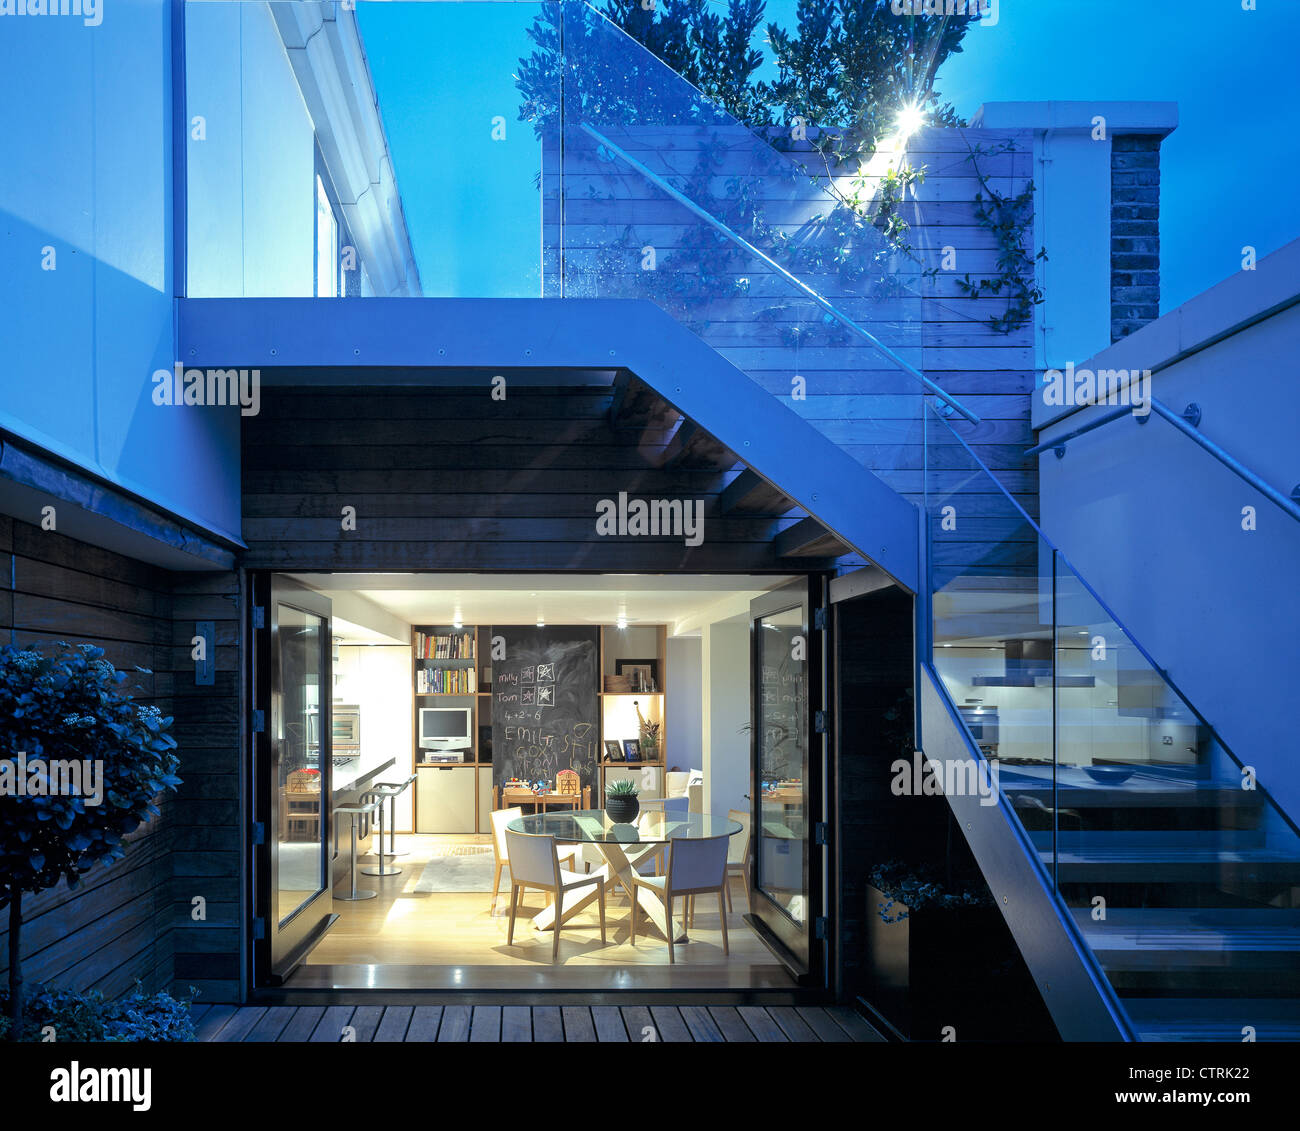 Penthouse Apartment Exterior To Dining Room And Exterior Stairs Stock Photo Alamy